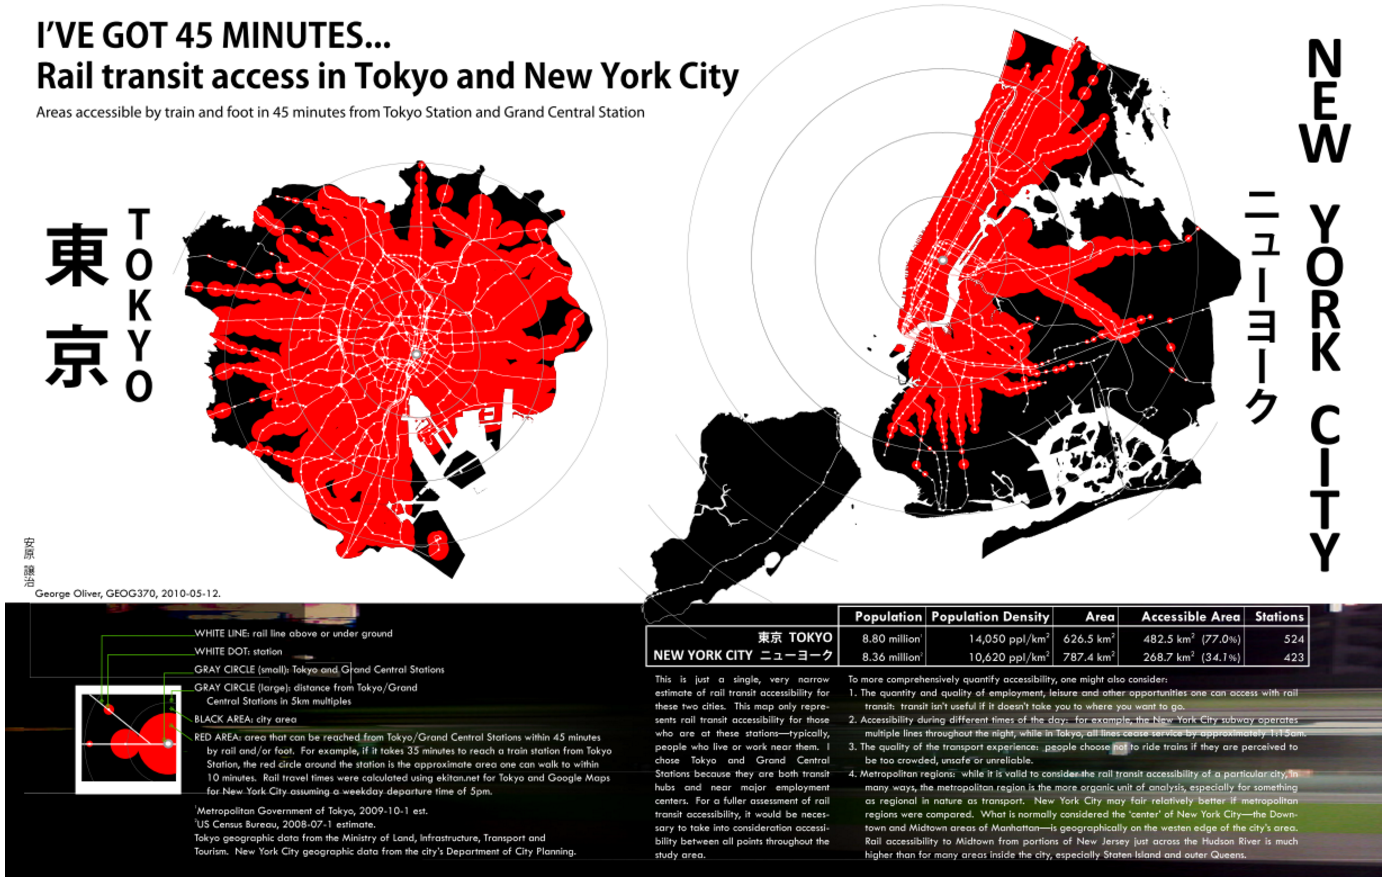 Comparison of NYC/Tokyo Transit Accessibility